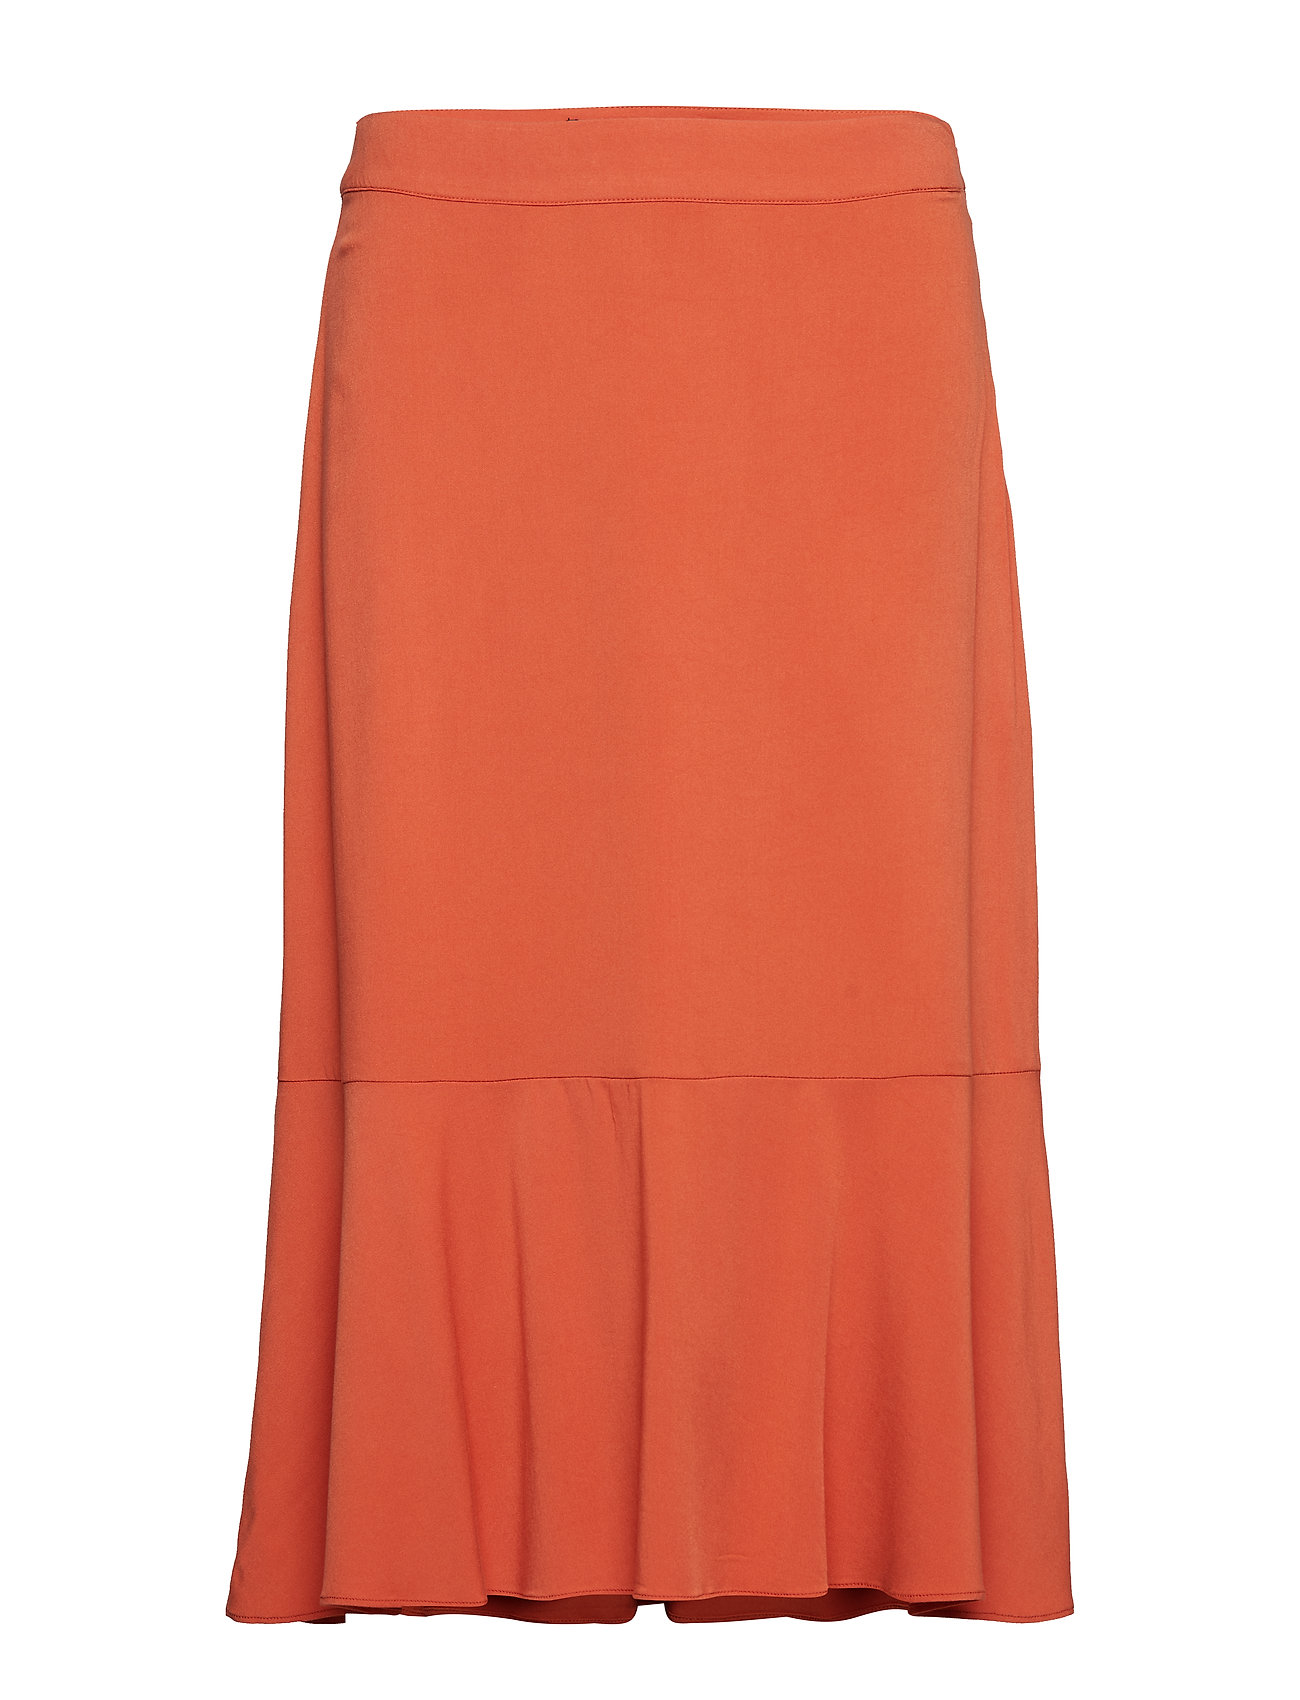 Soft Rebels Fiona Skirt - GINGER SPICE